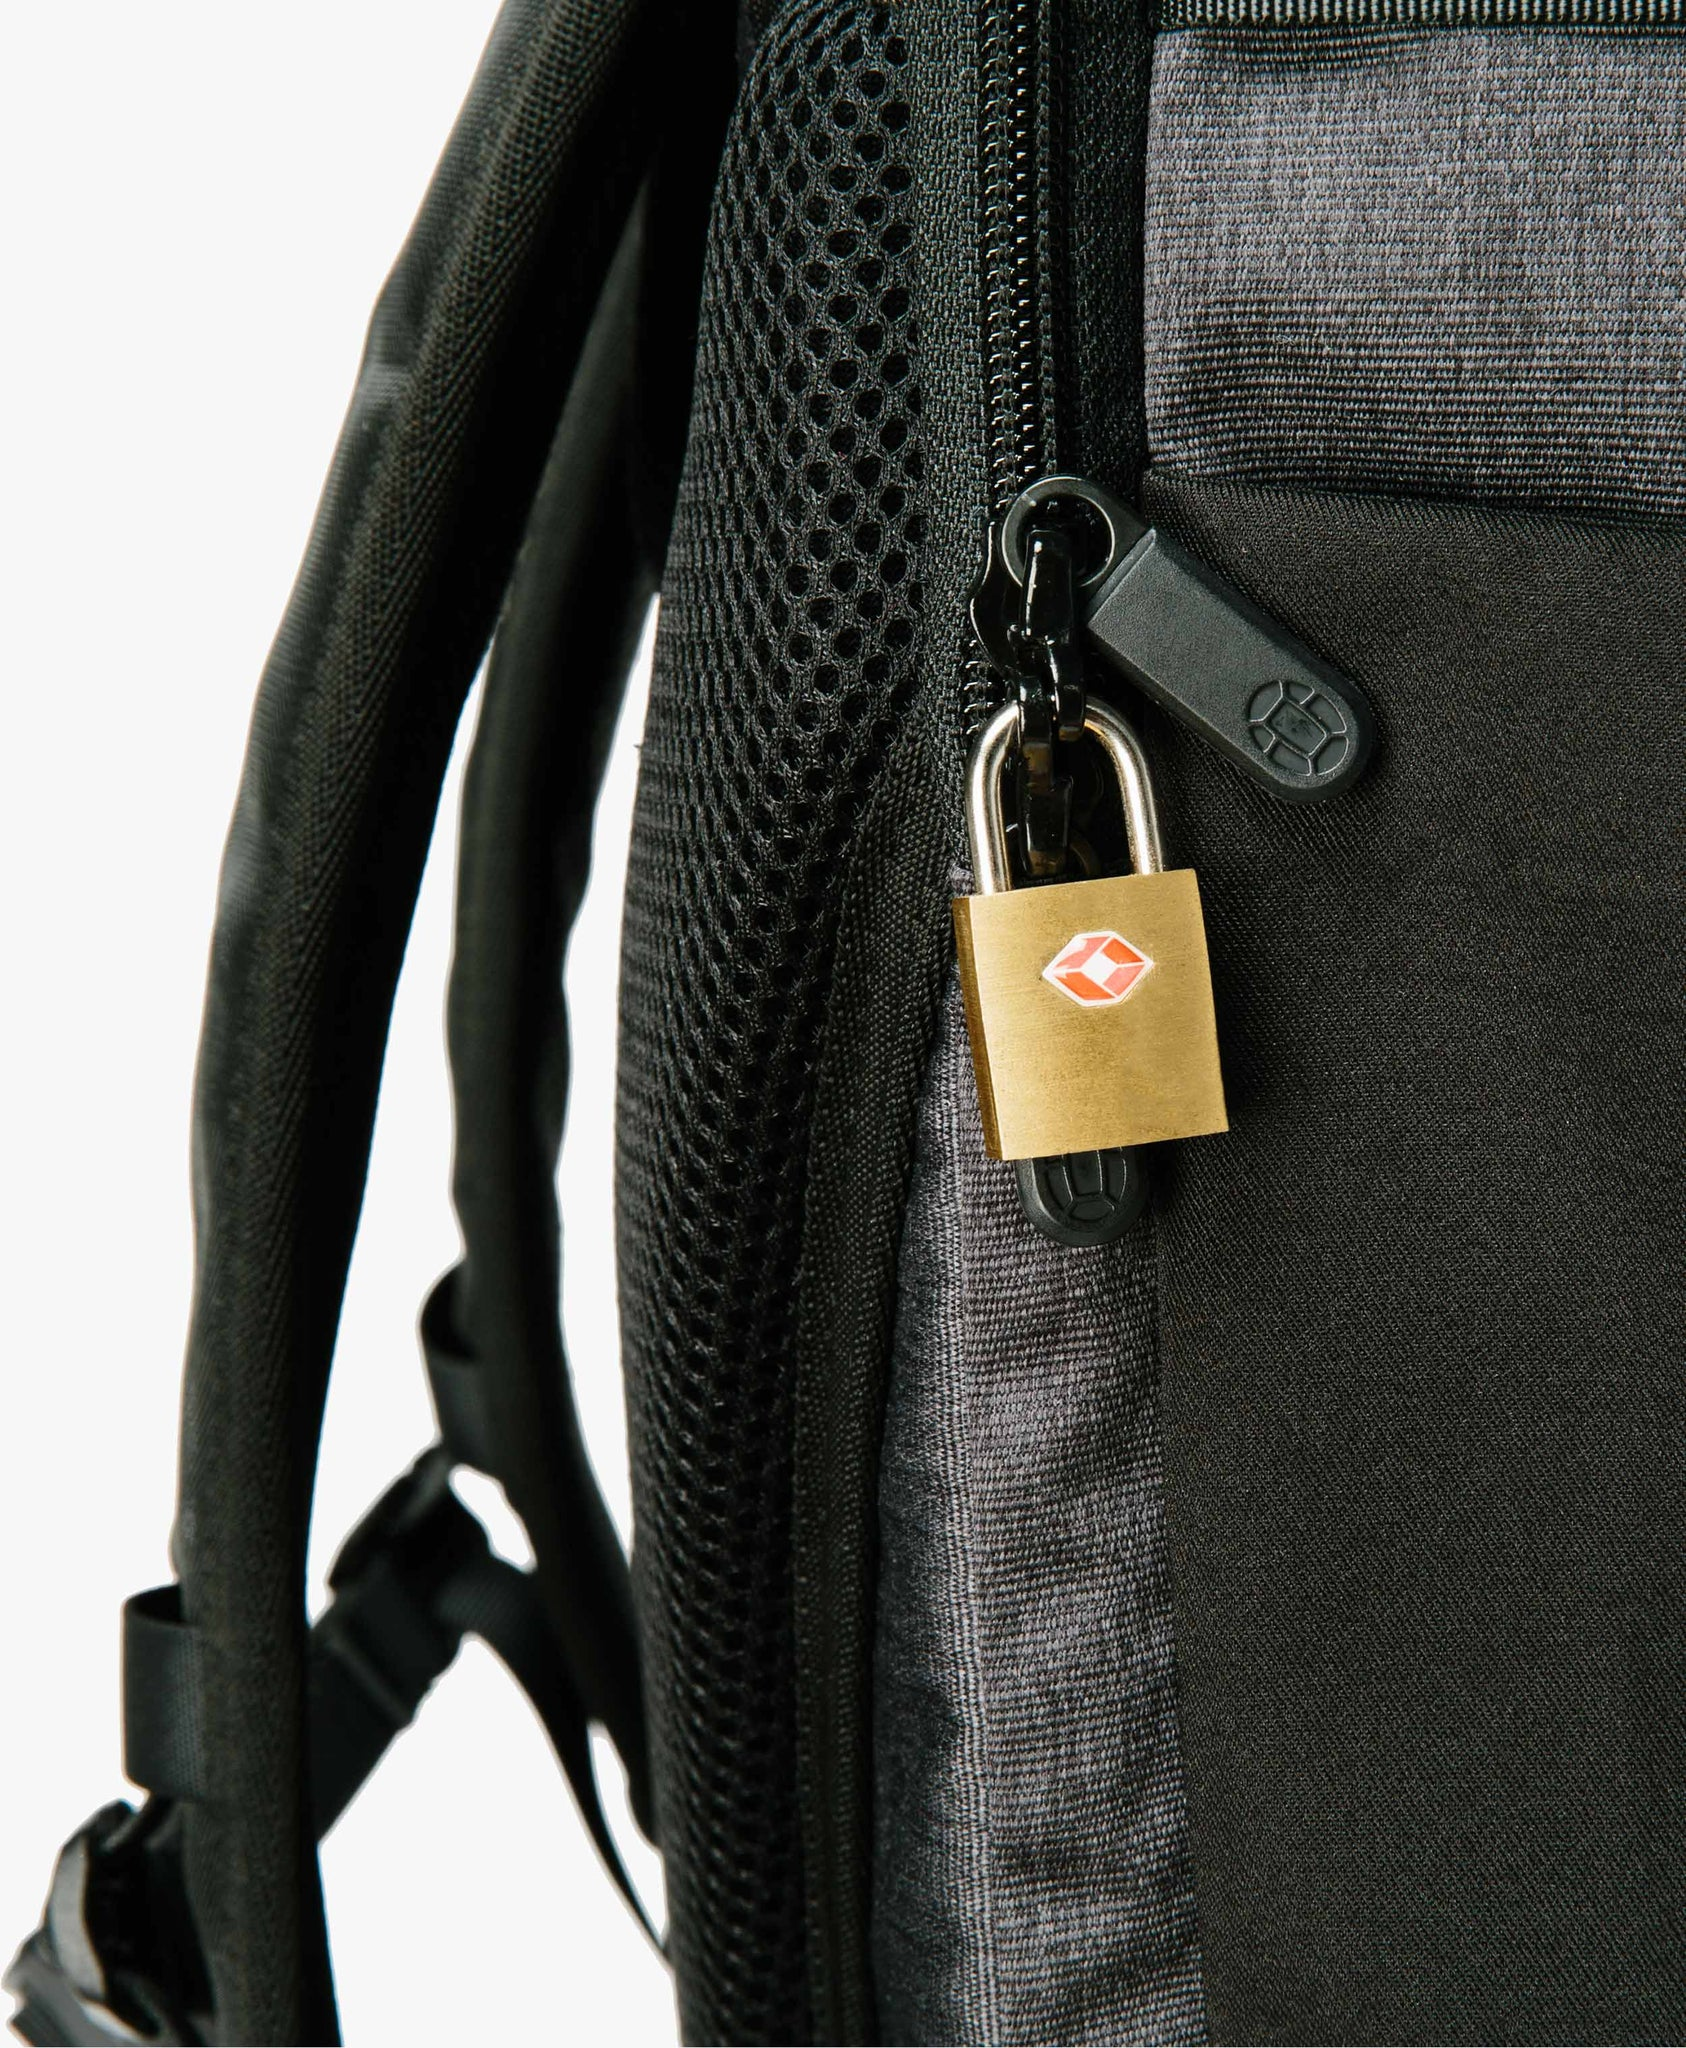 product/ Secure your stuff with lockable YKK zippers